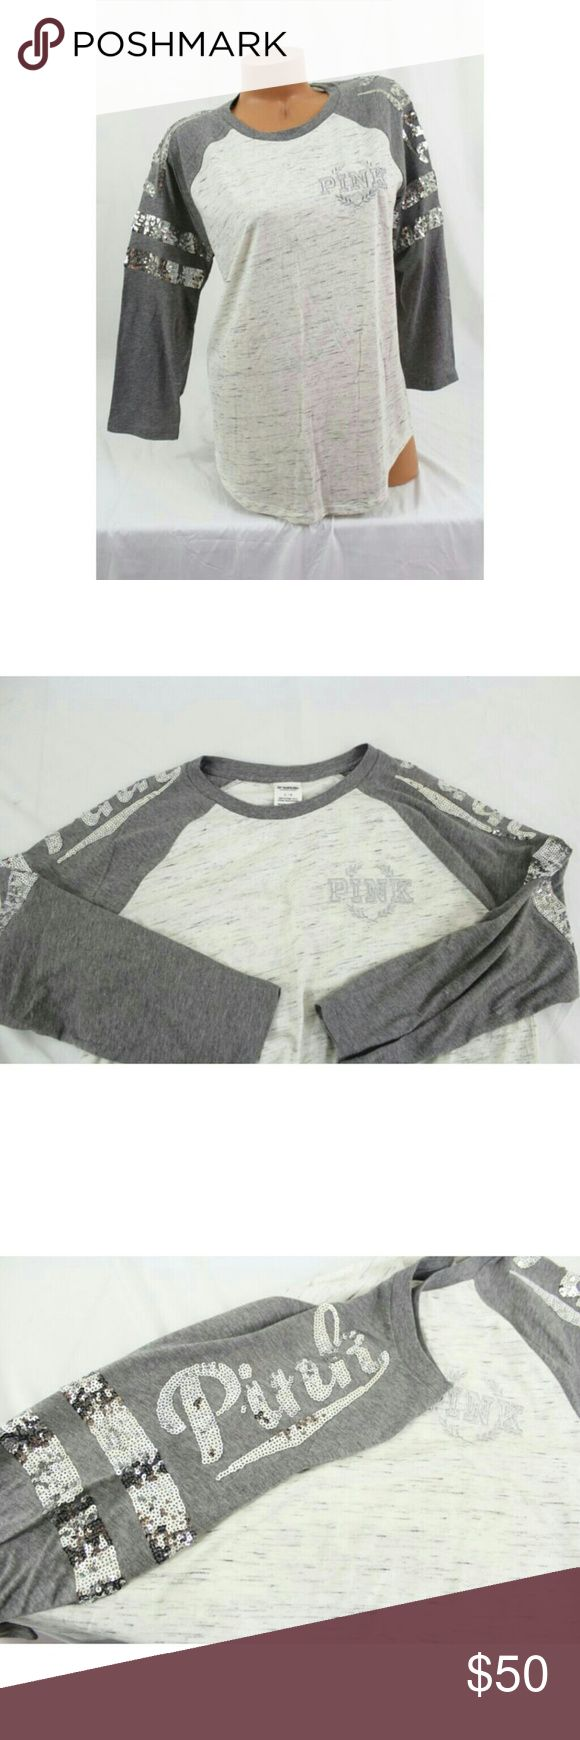 """❗Accepting Offers❗ Victoria's Secret Pink ~BLING Baseball Tee~Marled Gray-sleeve silver Hard to find. New. Never worn.   ~?Pink ~ by?Victoria's Secret Baseball Tee shirt Featuring silver embroidered crest logo and silver sequins :)  """"Contrast sleeves make this style a win-win. Curved bottom hem and ? sleeves for an athletic look.?""""  Relaxed, easy fit, Classic cotton jersey blend.  Size small but will fit medium. PINK Victoria's Secret Tops"""